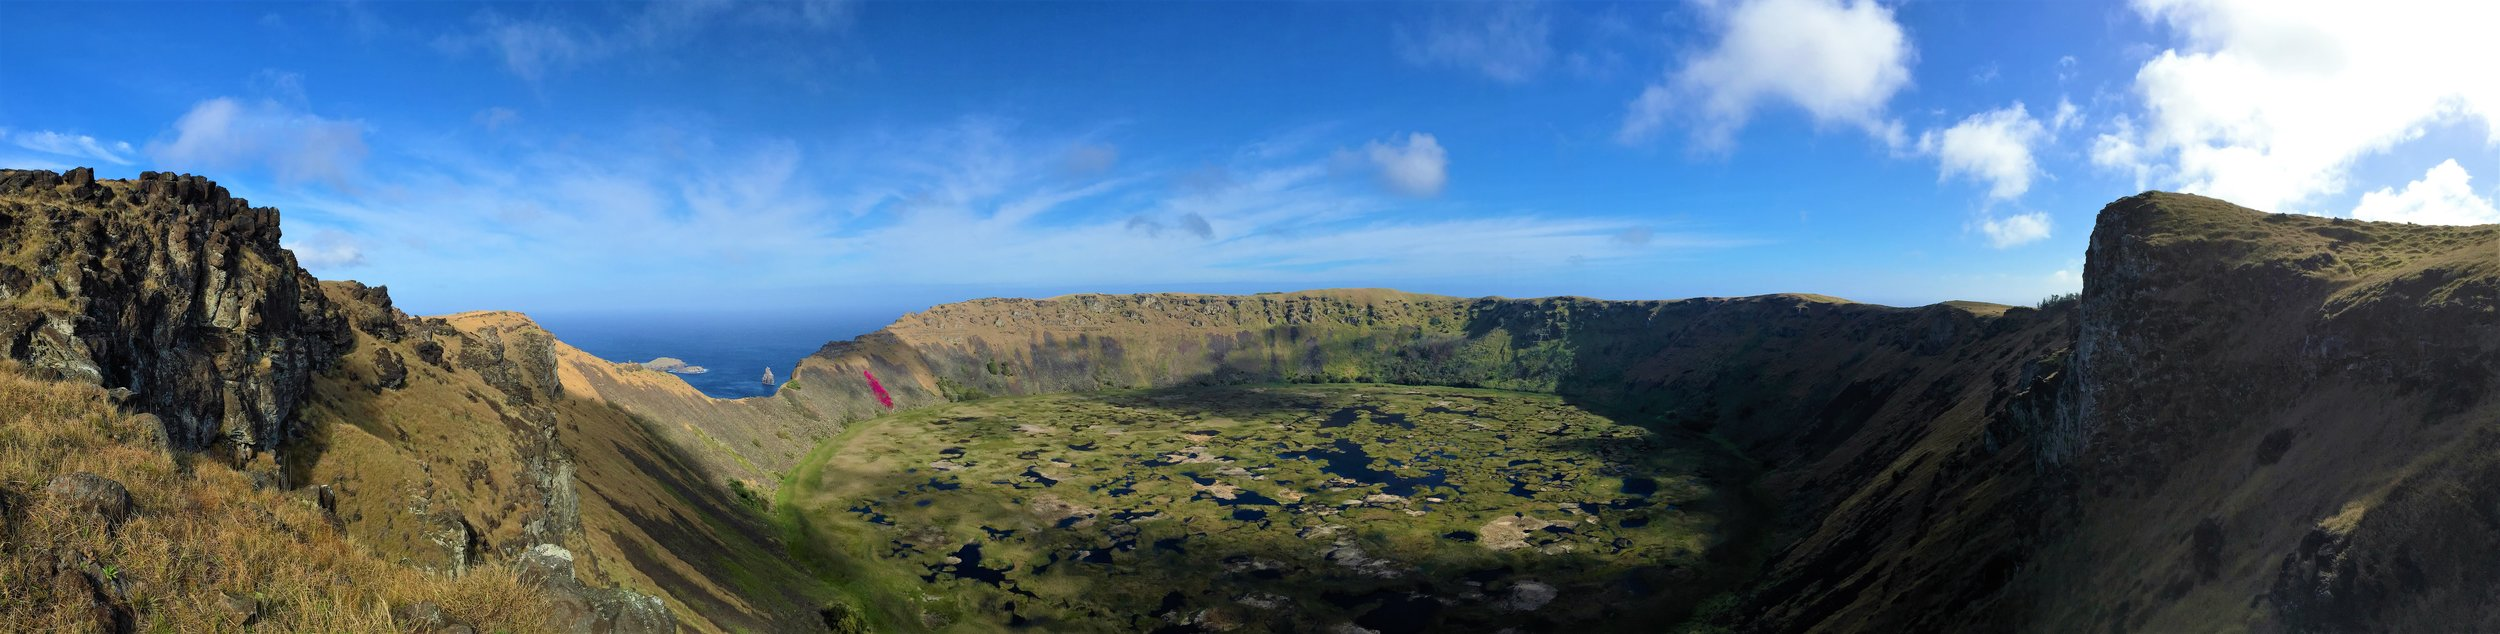 The steady, uphill climb to the rim of the Rano Kau volcanic crater lake is worth the view at the top - notice the bright-fuchsia bougainvillea just left of center!